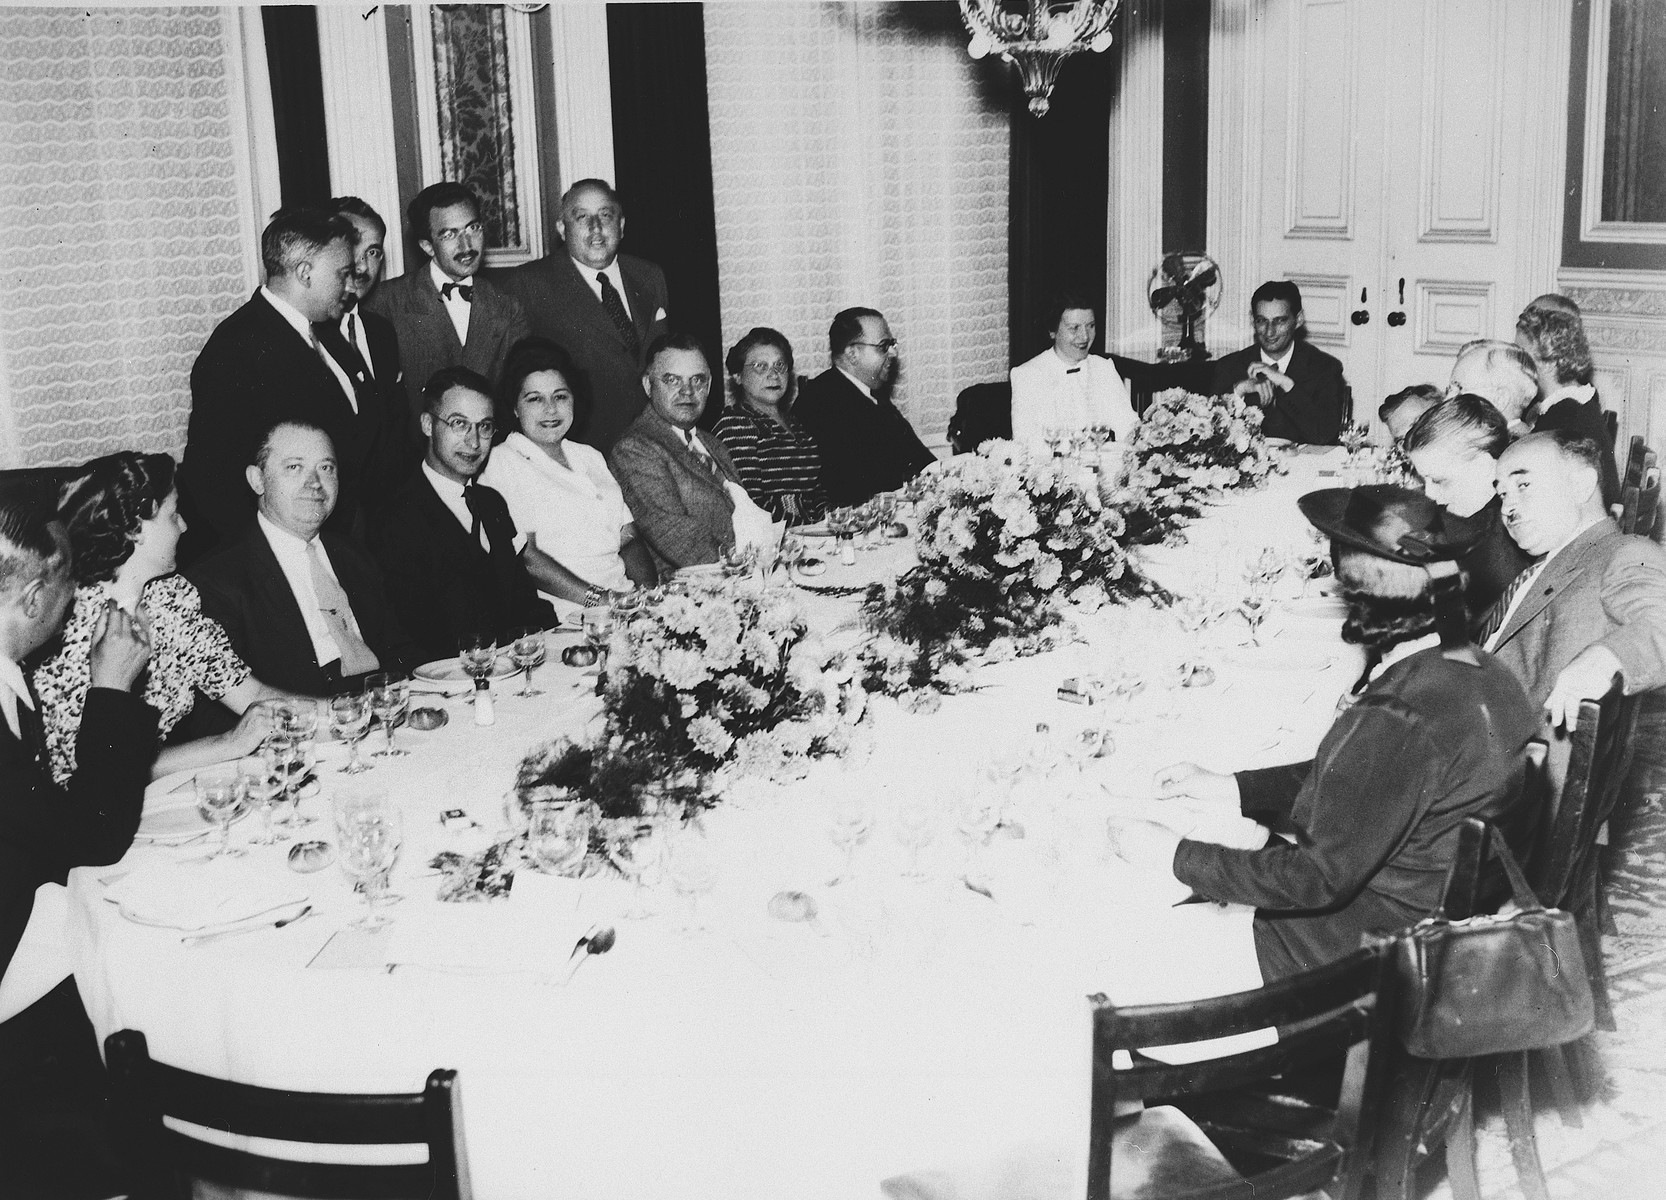 Members of various Jewish welfare organizations operating in Lisbon to rescue European Jewish refugees, are seated around a banquet table at a hotel in Lisbon.  Among those pictured are Joseph Schwartz, Chairman of the European executive council of the American Joint Distribution Committee (at the head of the table) and Albert Nussbaum (standing between the windows on the right).